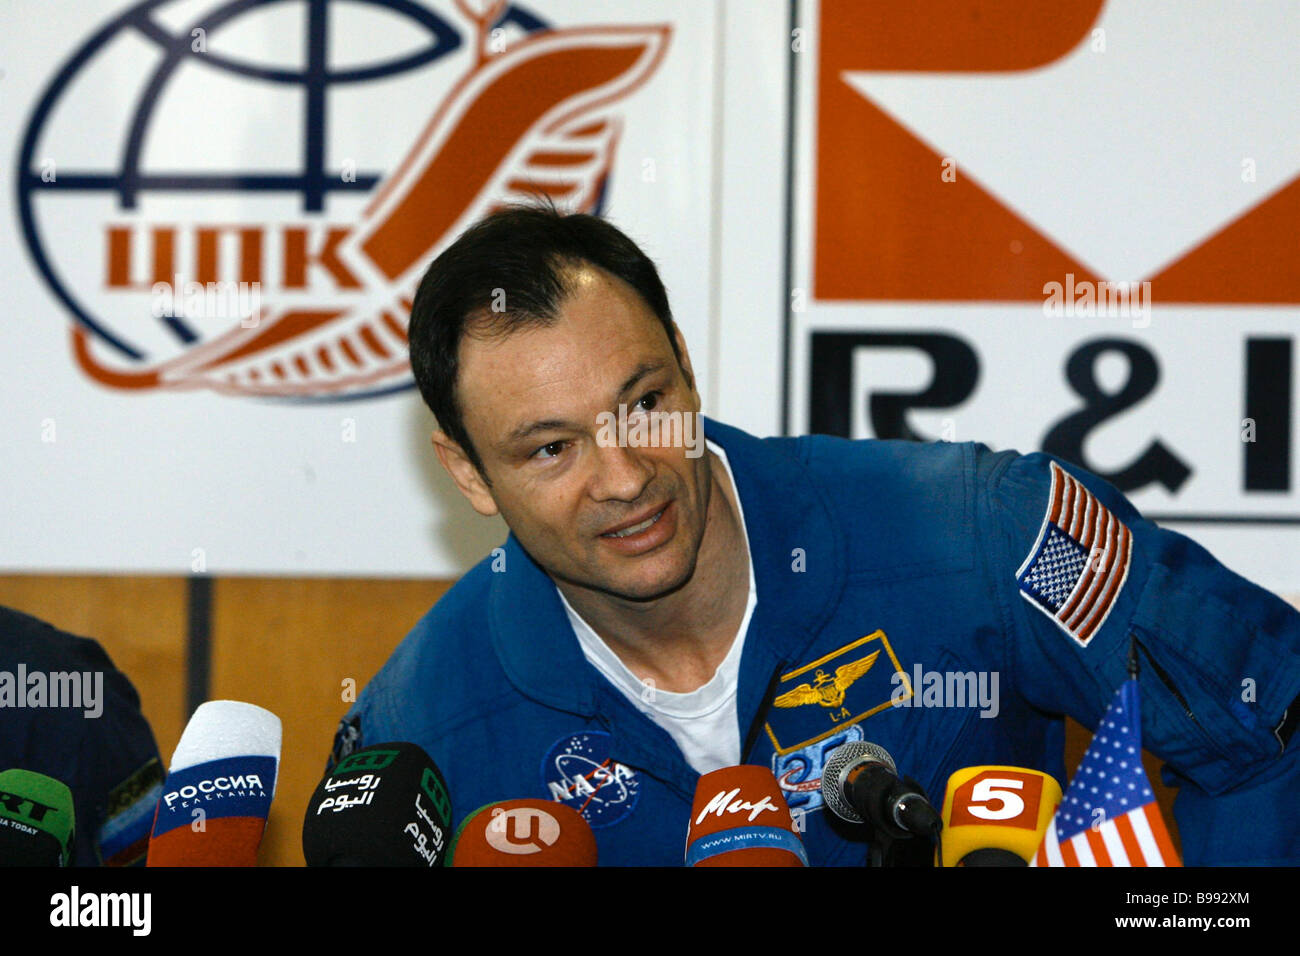 Mikhail Tyurin Russian flight engineer of the 14th expedition to the International Space Station giving news conference - Stock Image